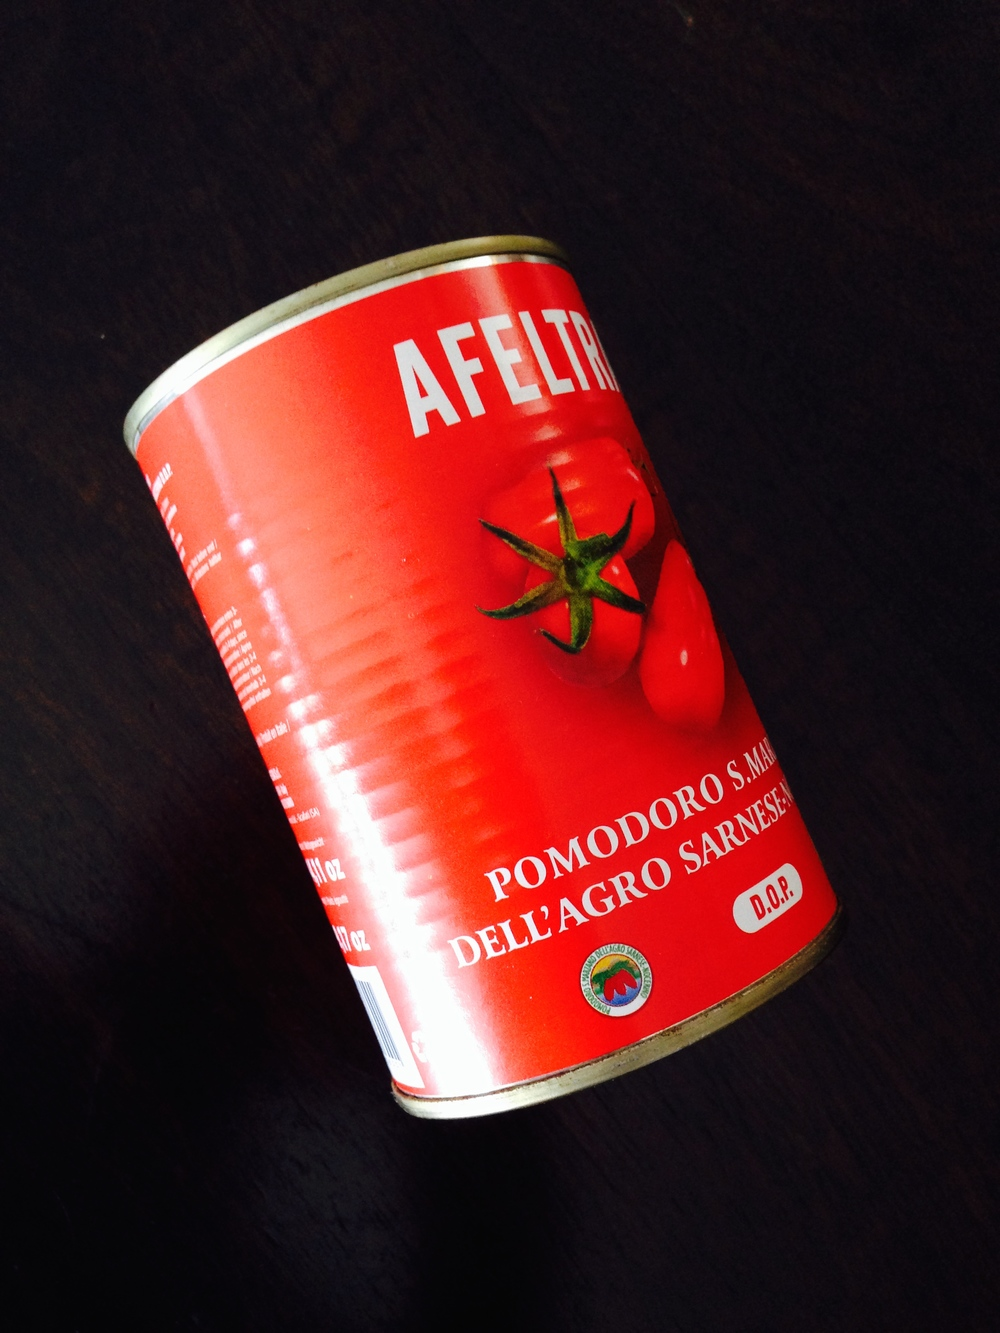 The canned Italian stuff: not bad, just not c oncassé.